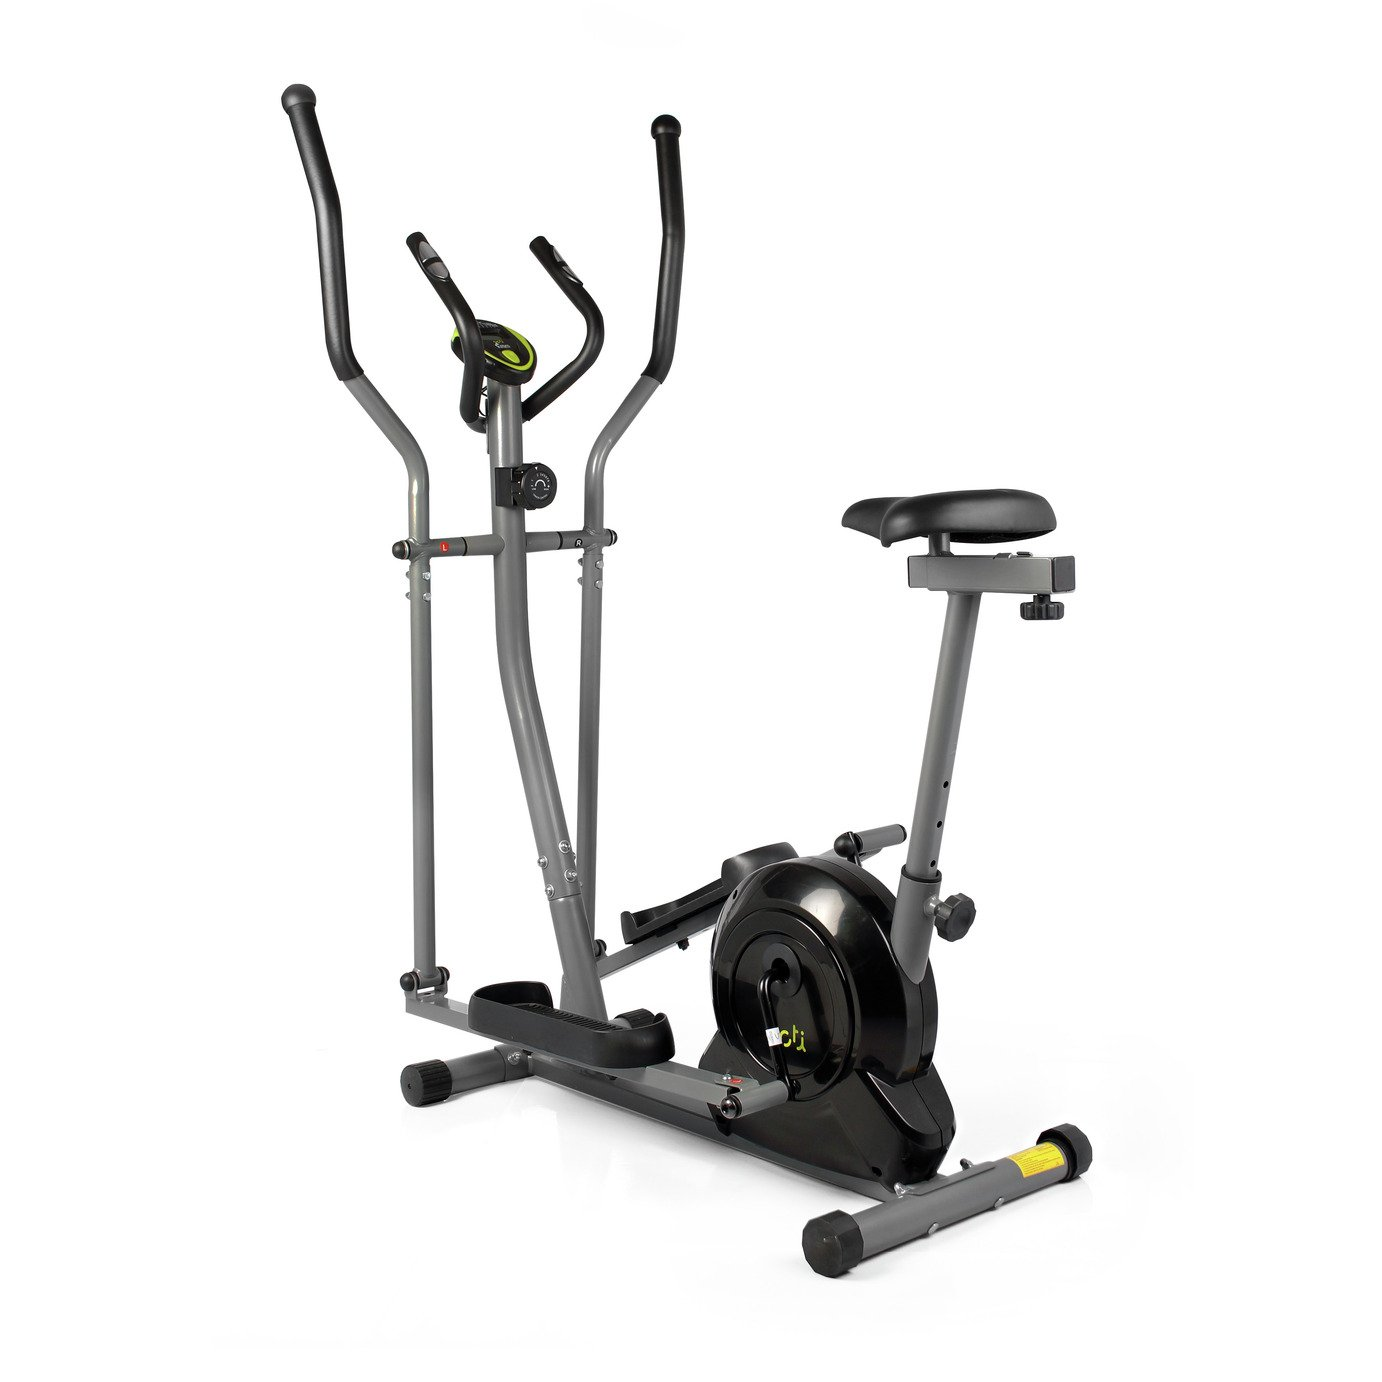 Buy Reebok Cross Trainers And Elliptical Trainers At Argos